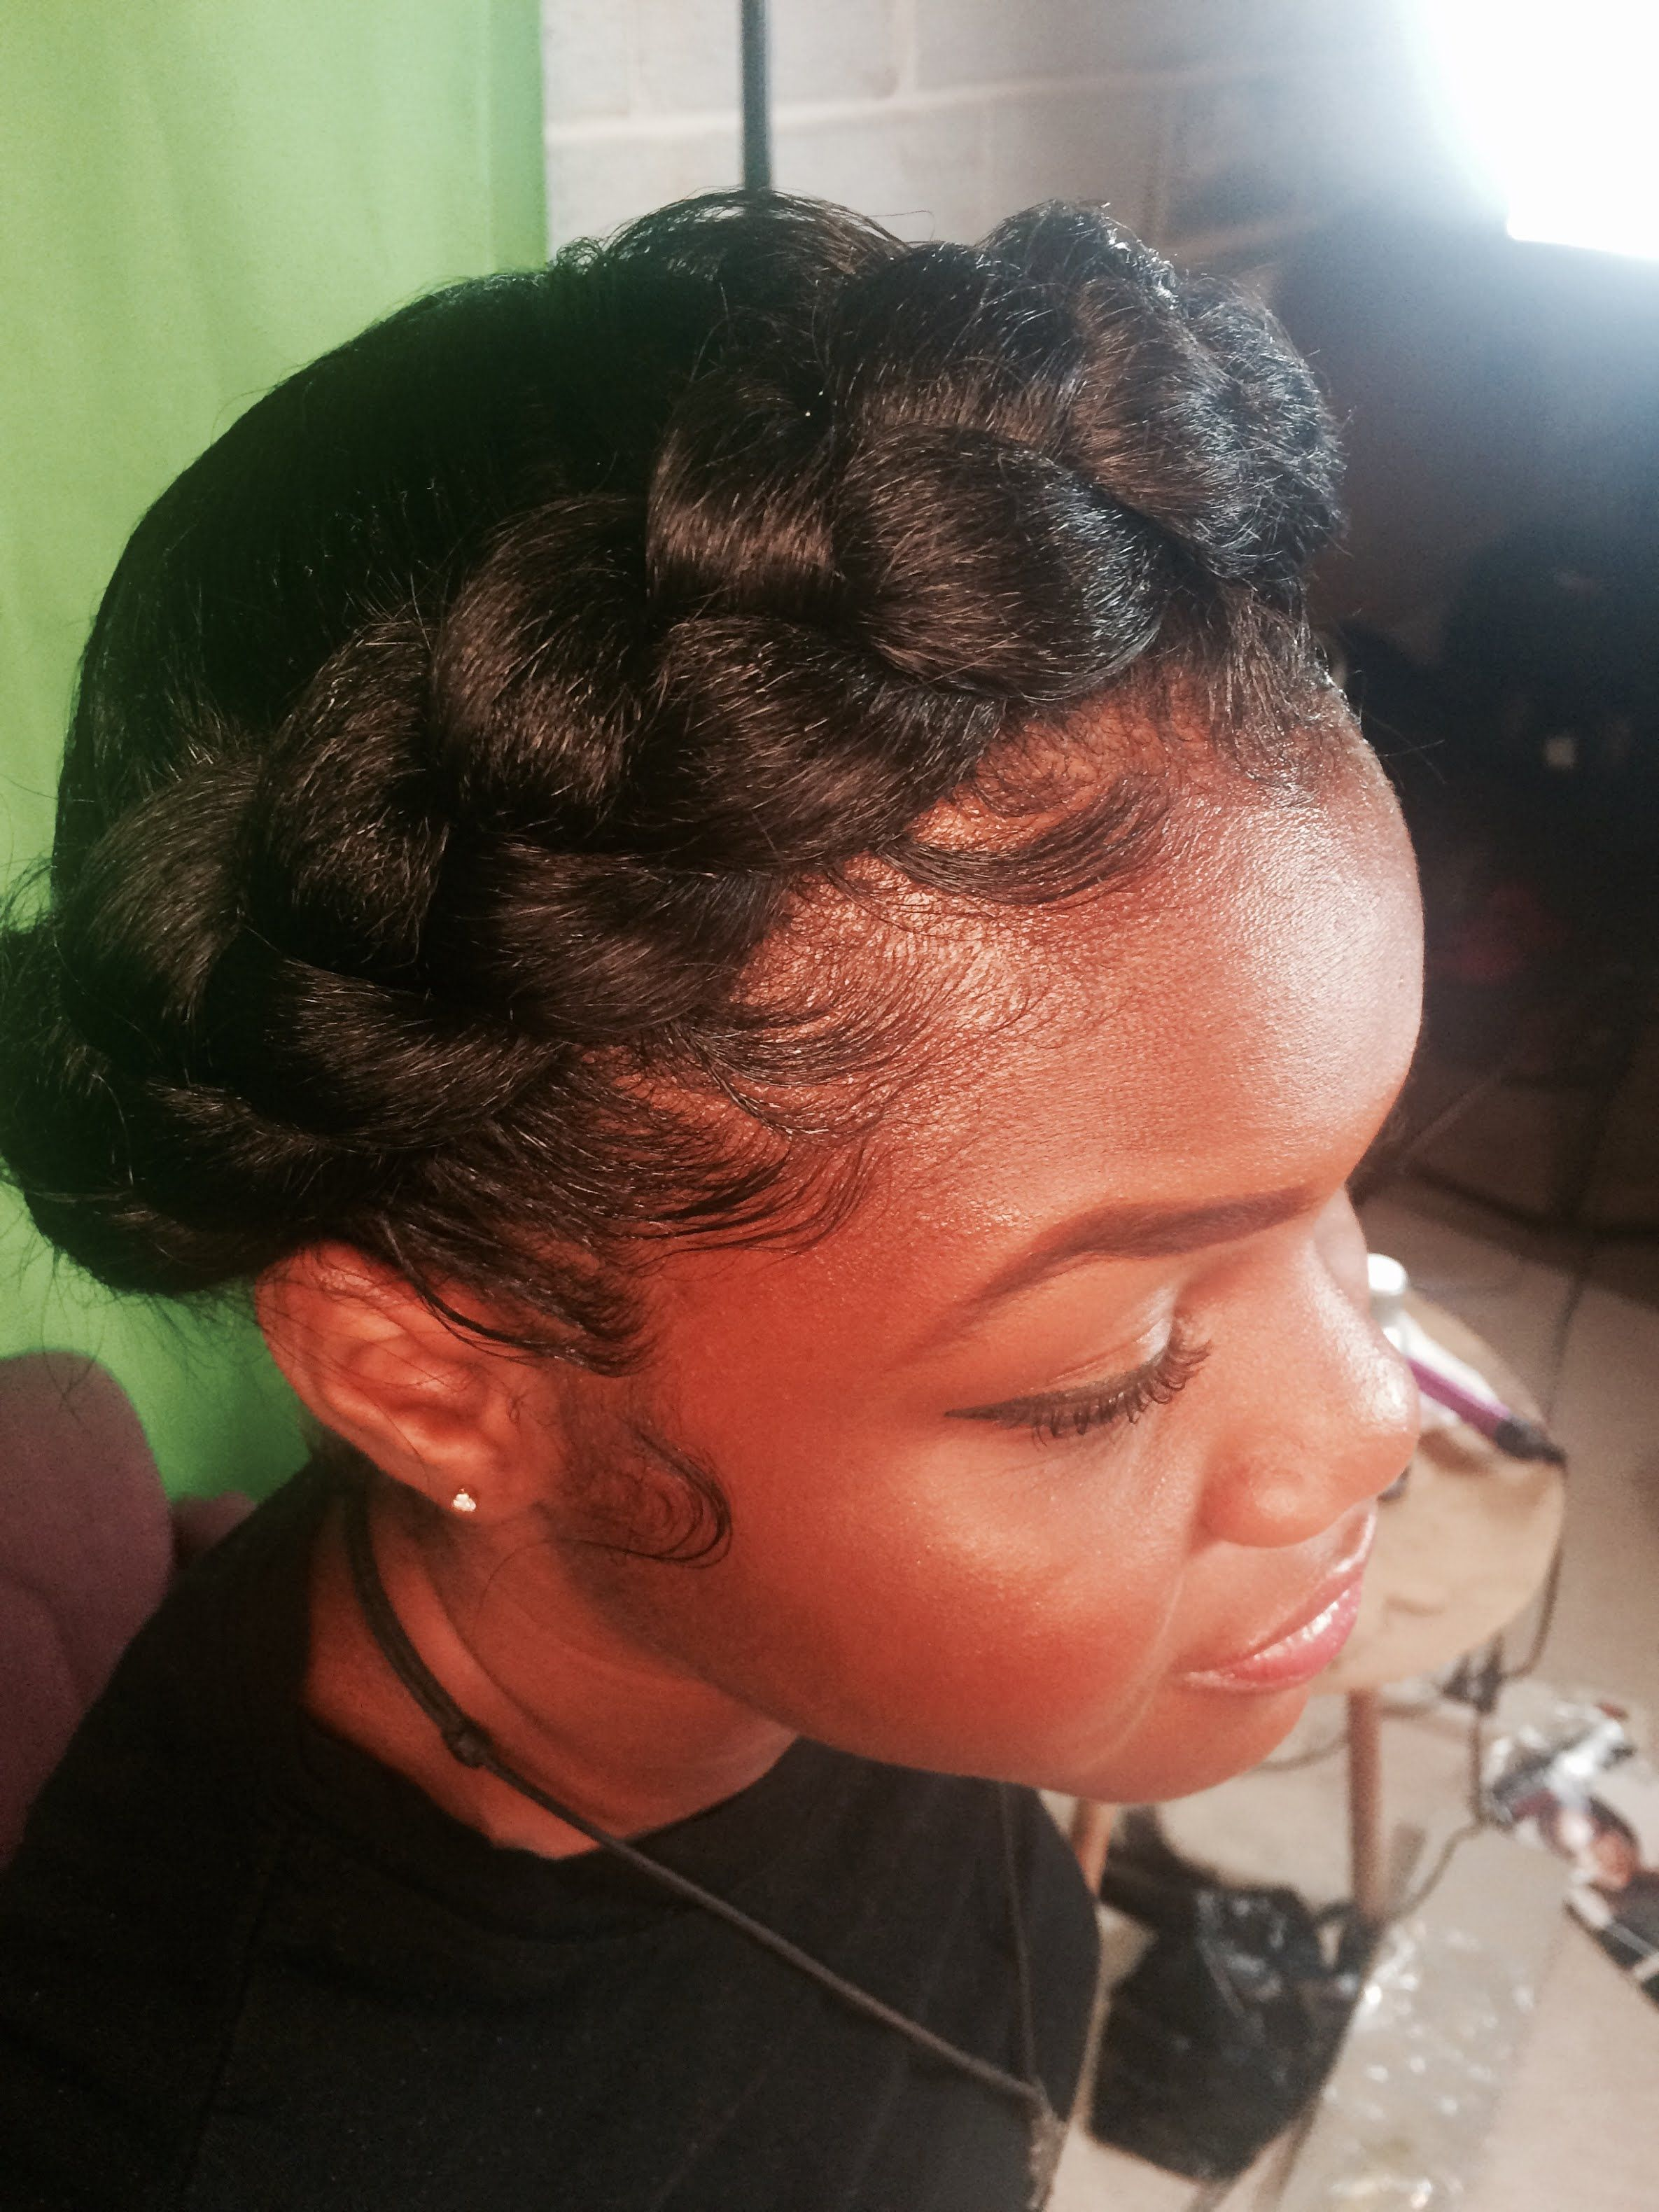 How To Do A Halo Crown Braid With Images Natural Hair Braids